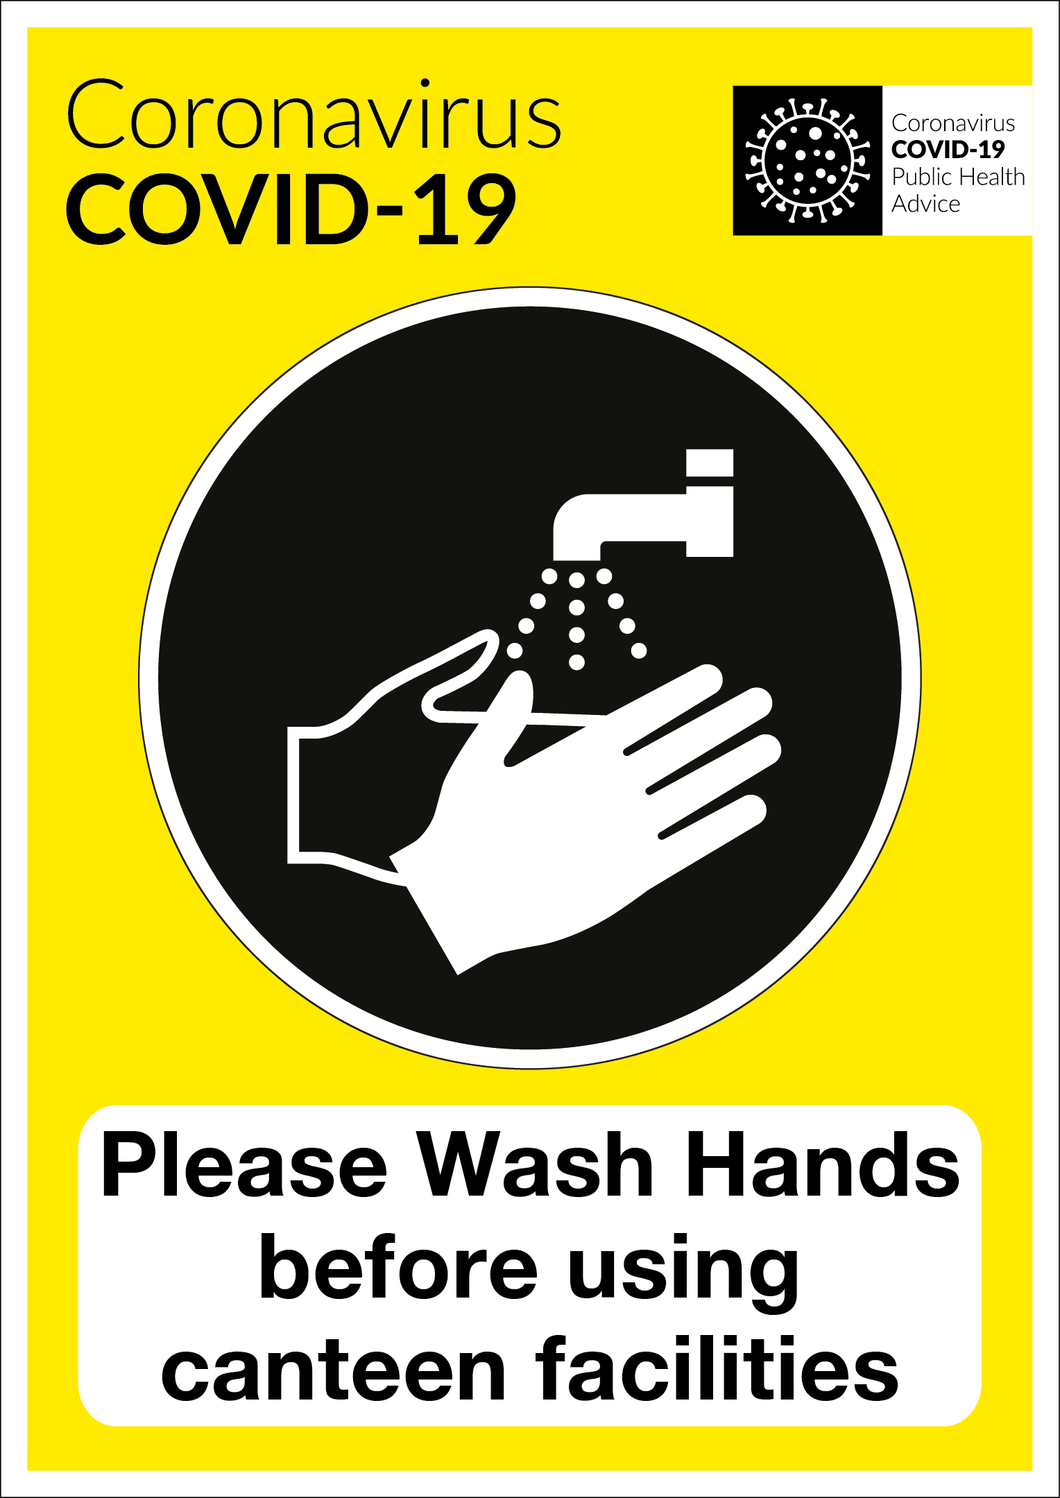 COVID-19 Wash Hands Canteen Facilities Sign | Code 030